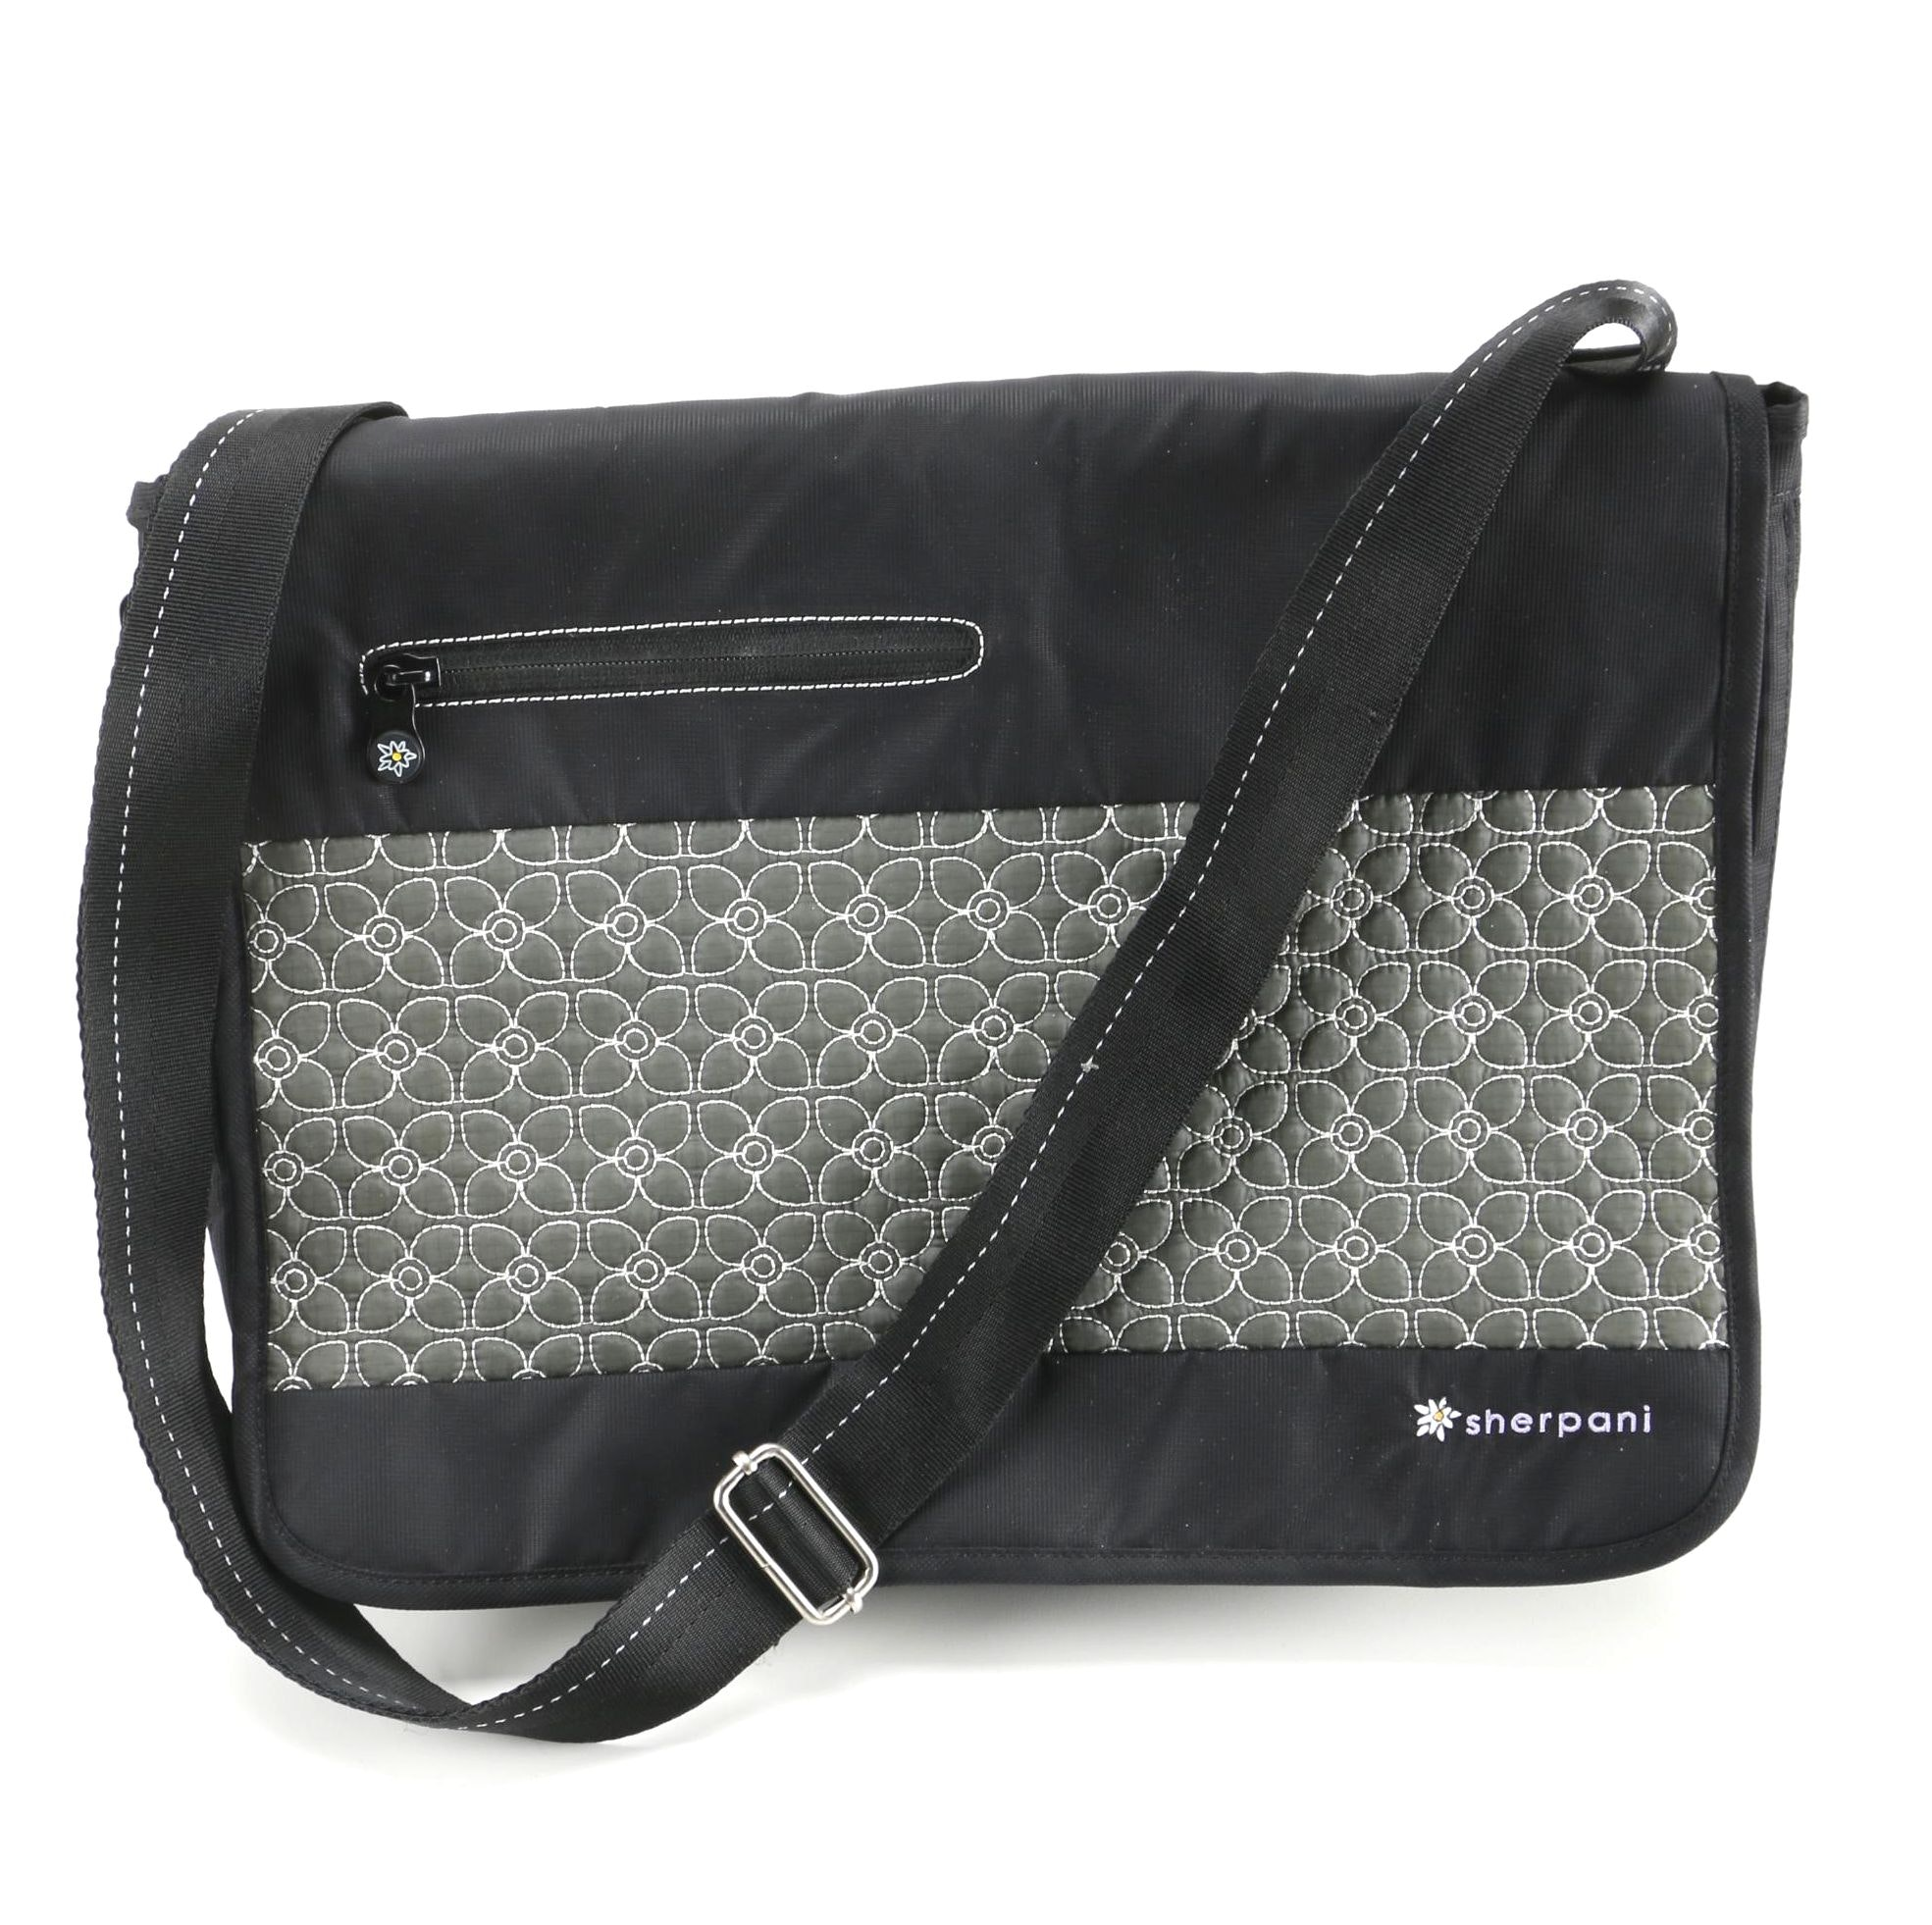 Sherpani Messenger Bag With Quilted Design